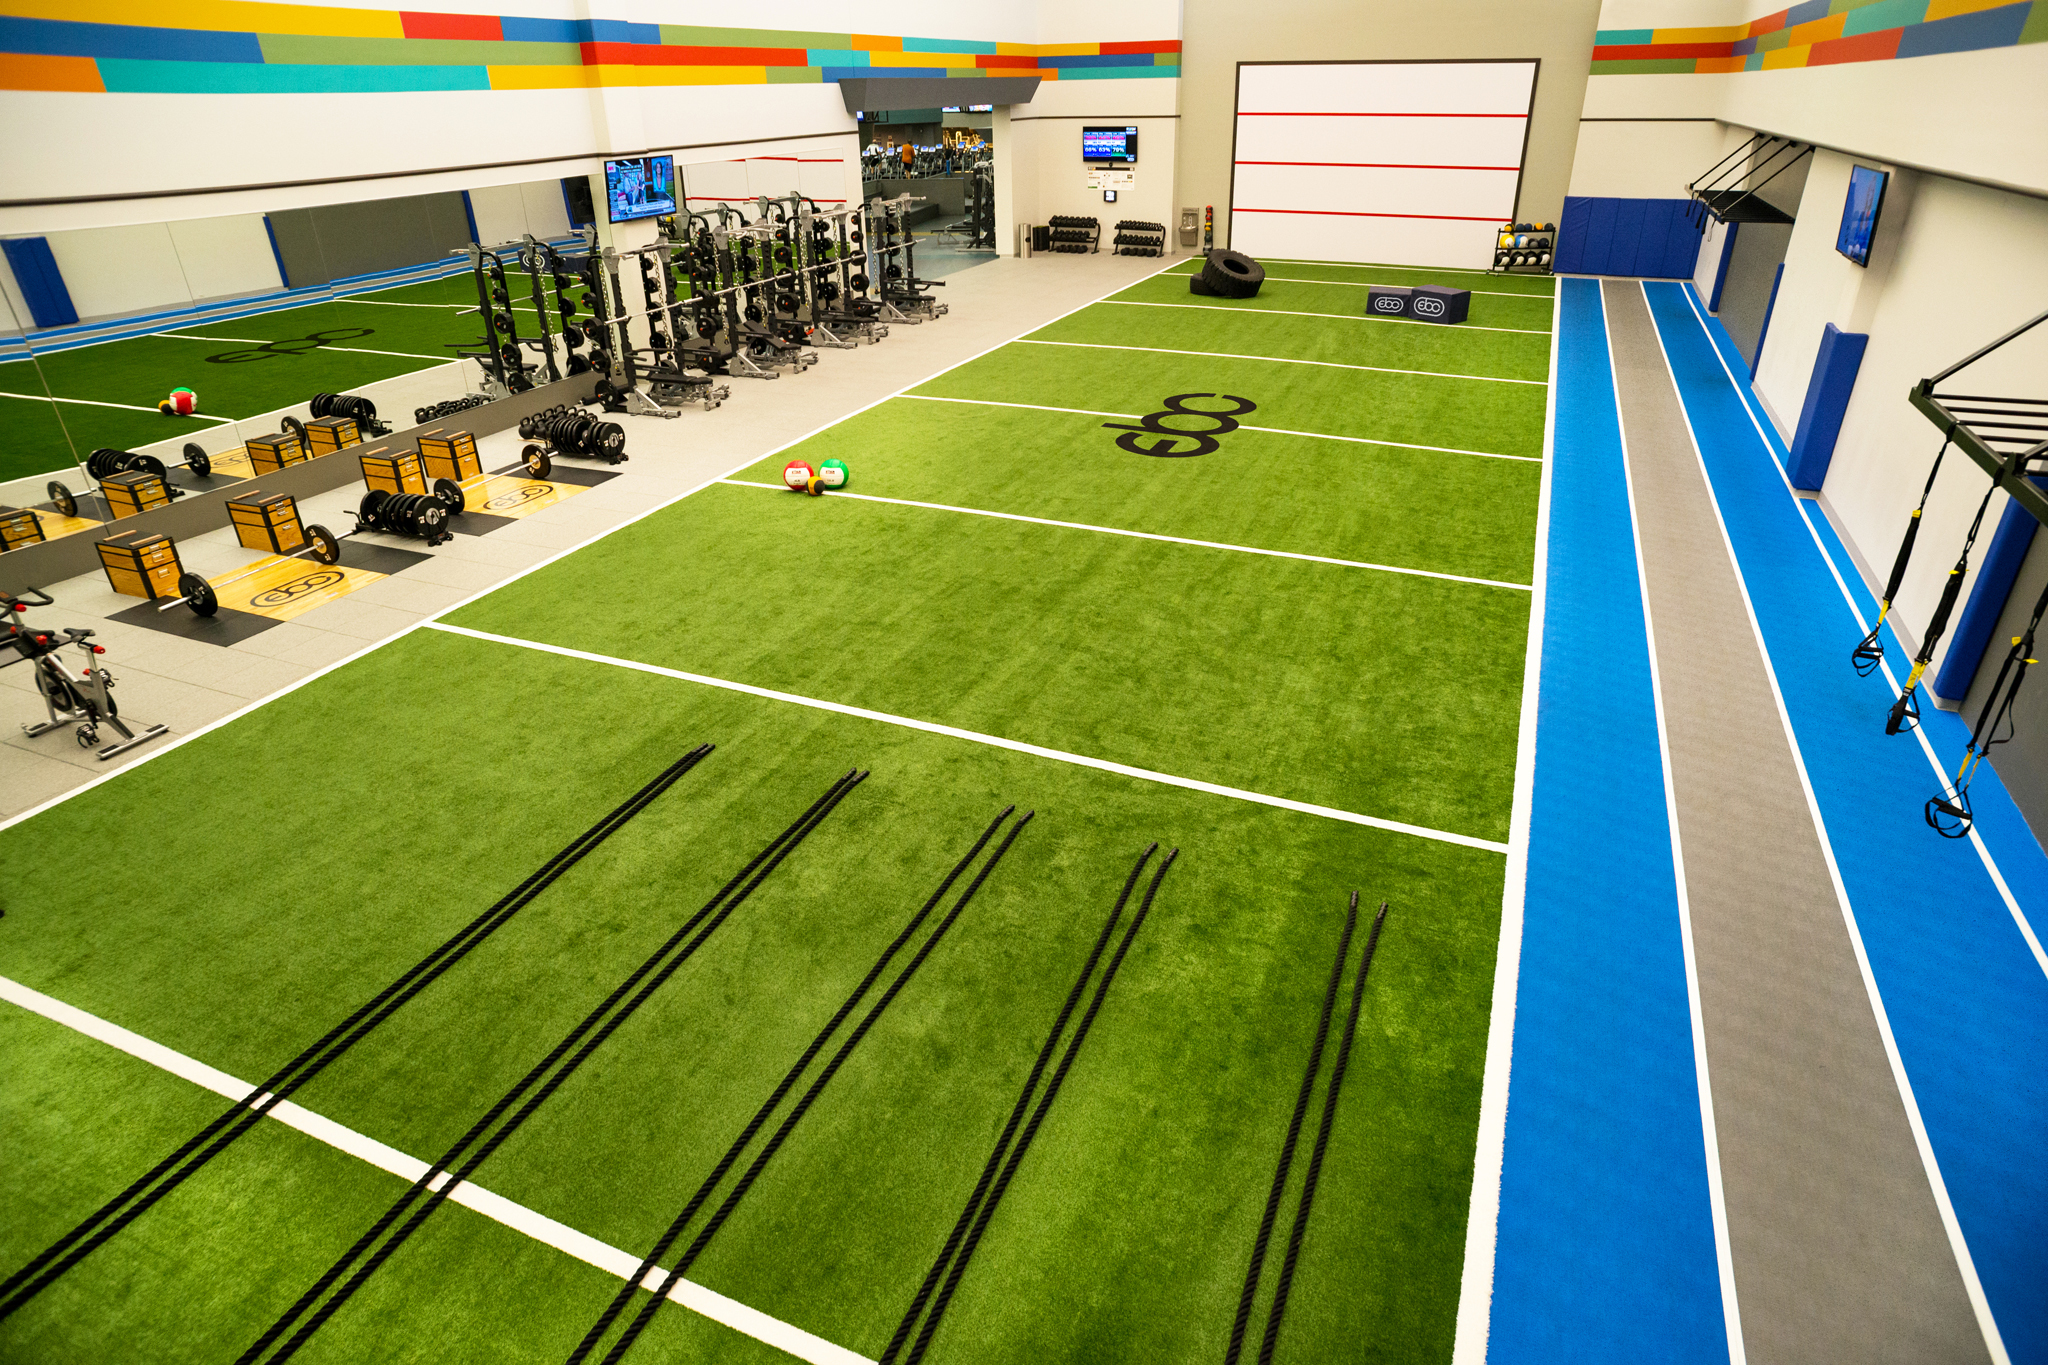 The 20 best gyms in Chicago